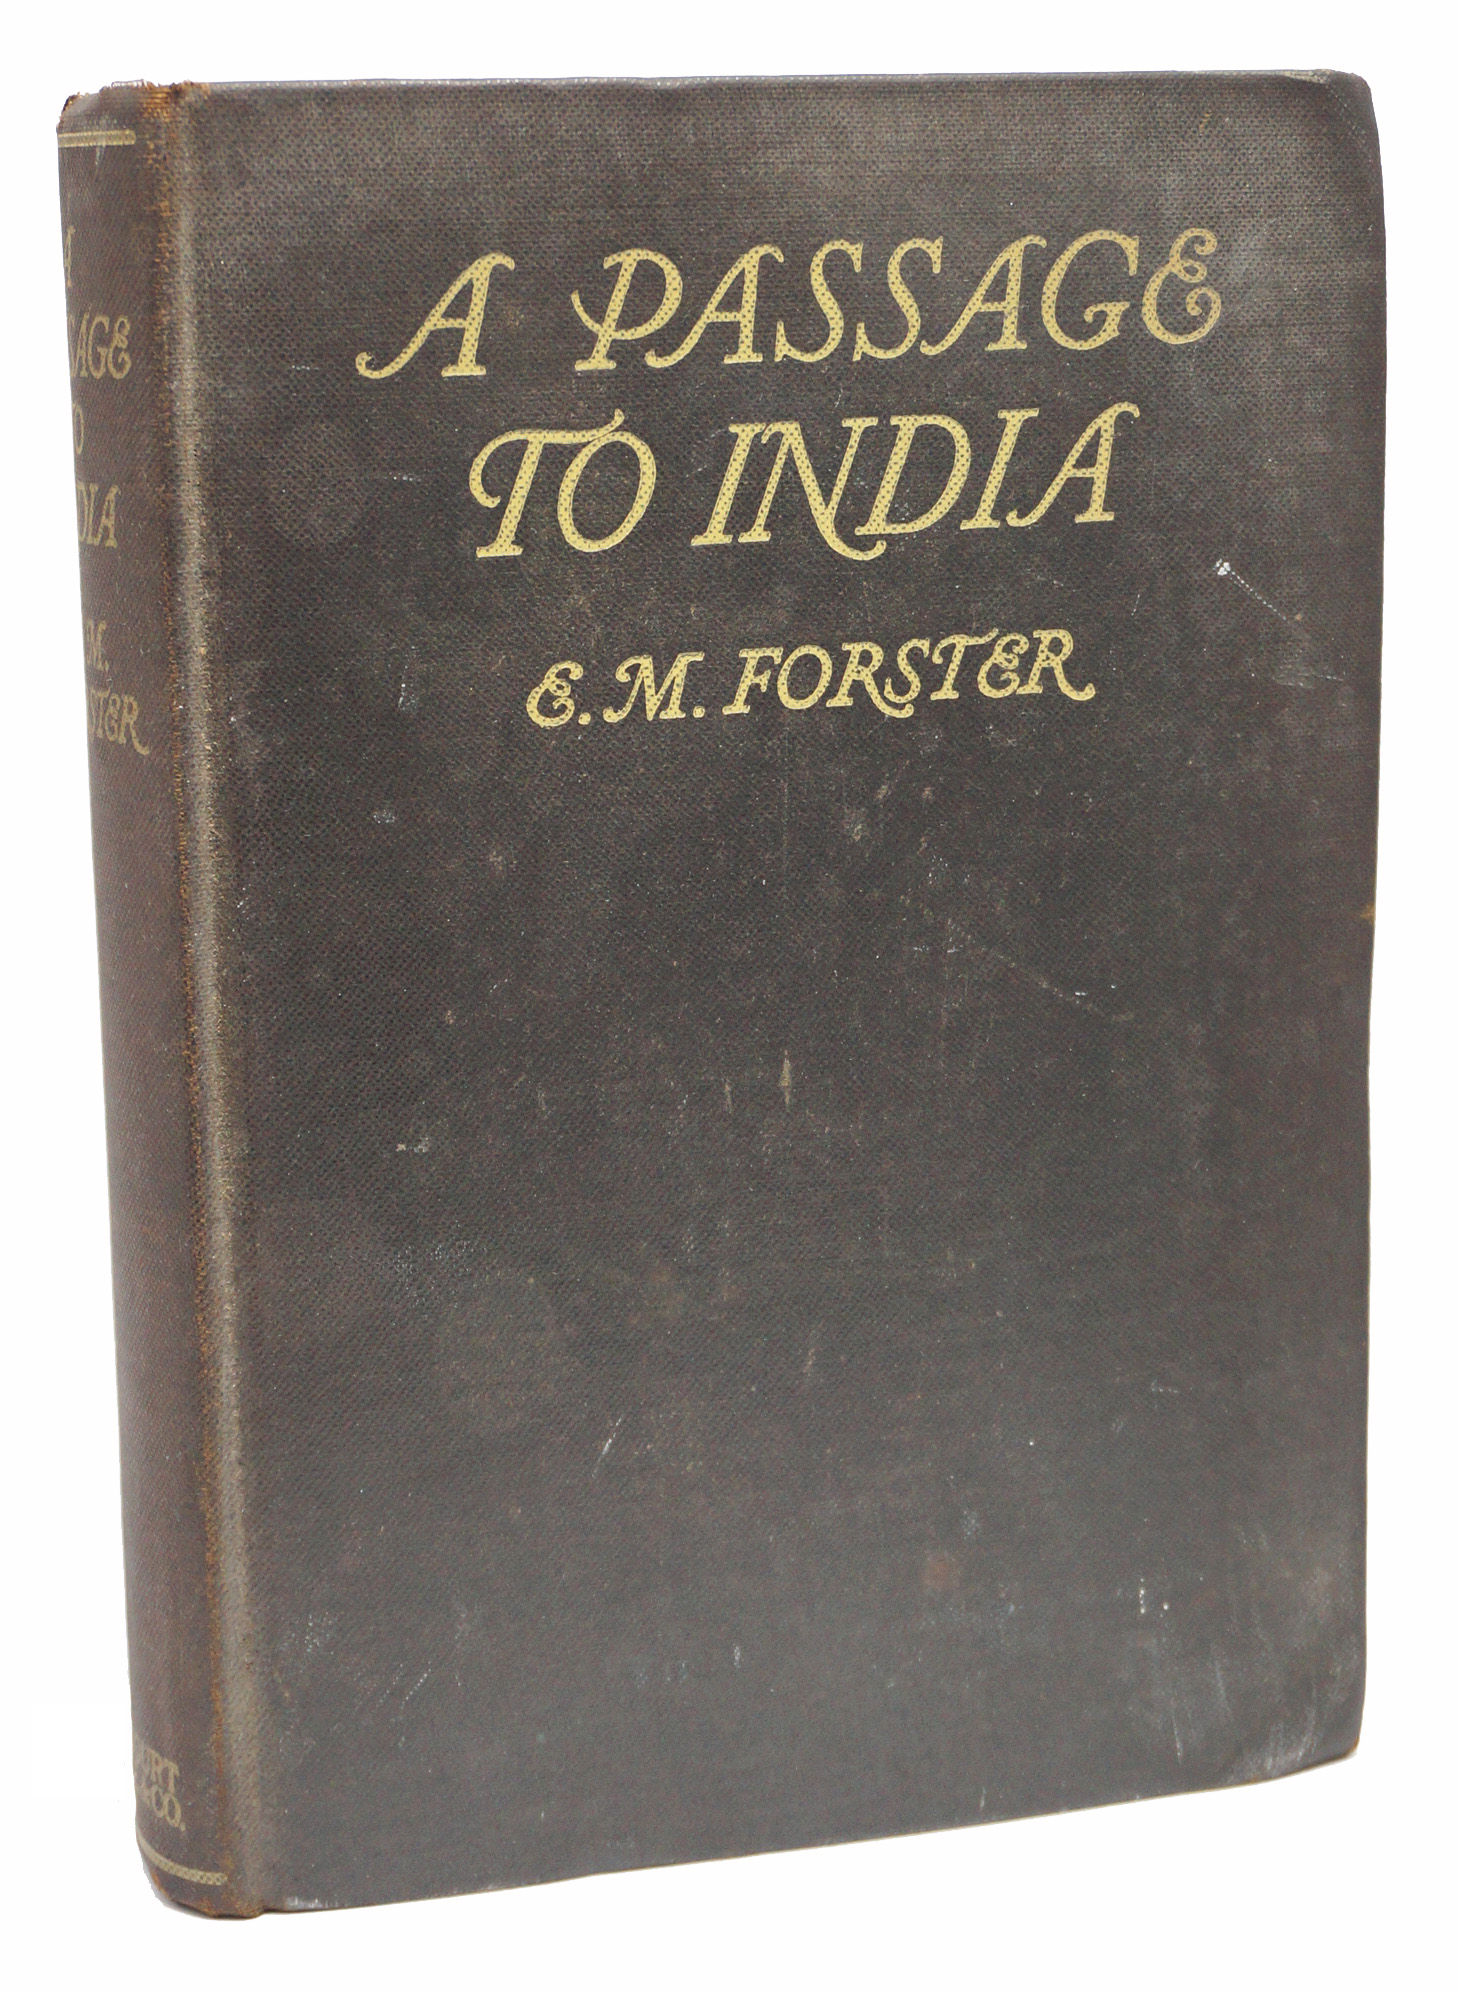 an analysis of a passage to india by em forster Rethinking identity: the coloniser in e m forster's a passage to india  such analysis is vital for understanding the deep thematic meaning of the.